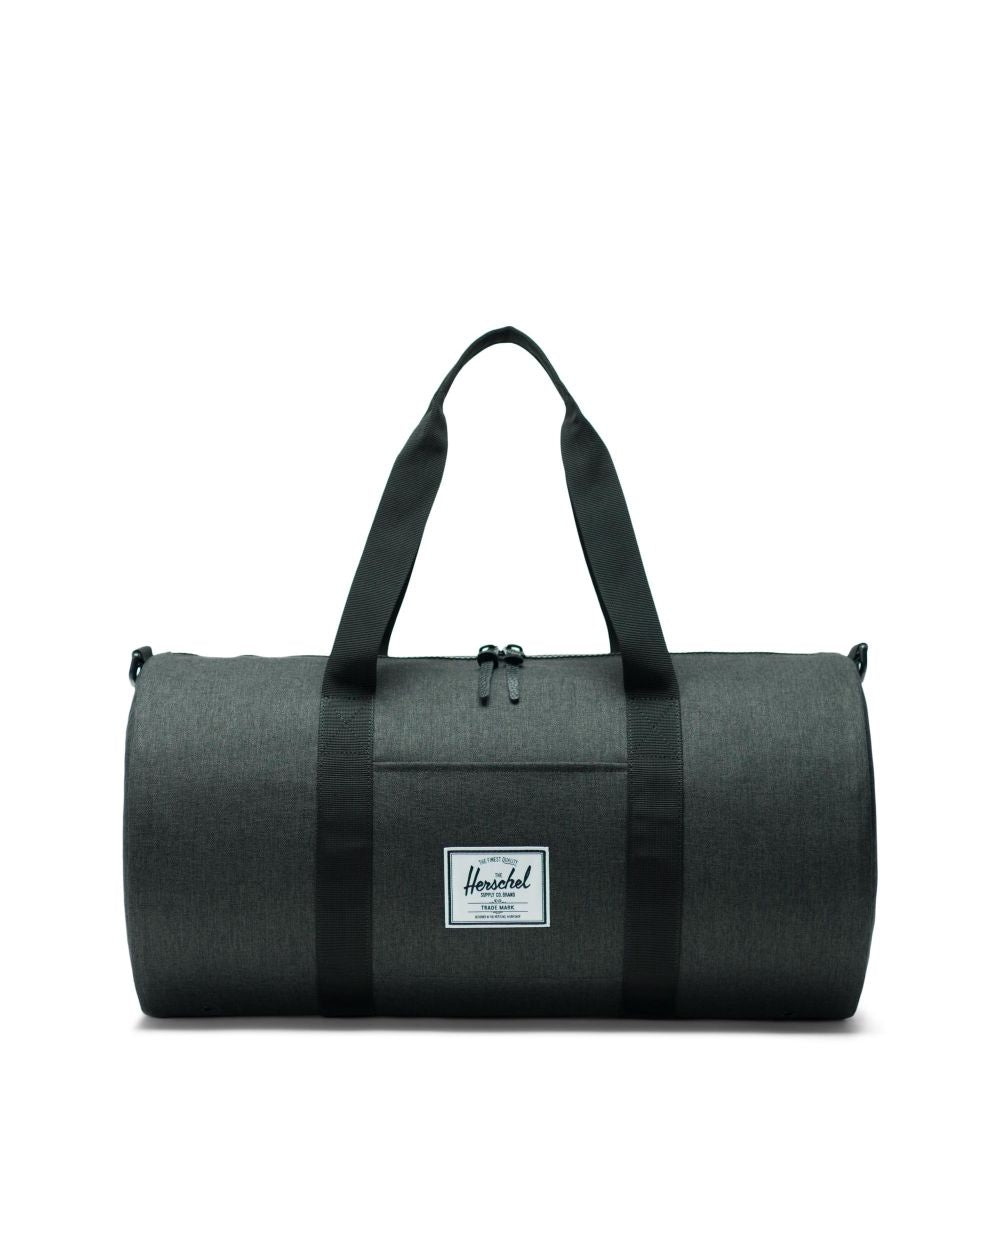 HERSCHEL - SUTTON DUFFLE MID-VOLUME IN BLACK CROSSHATCH/BLACK